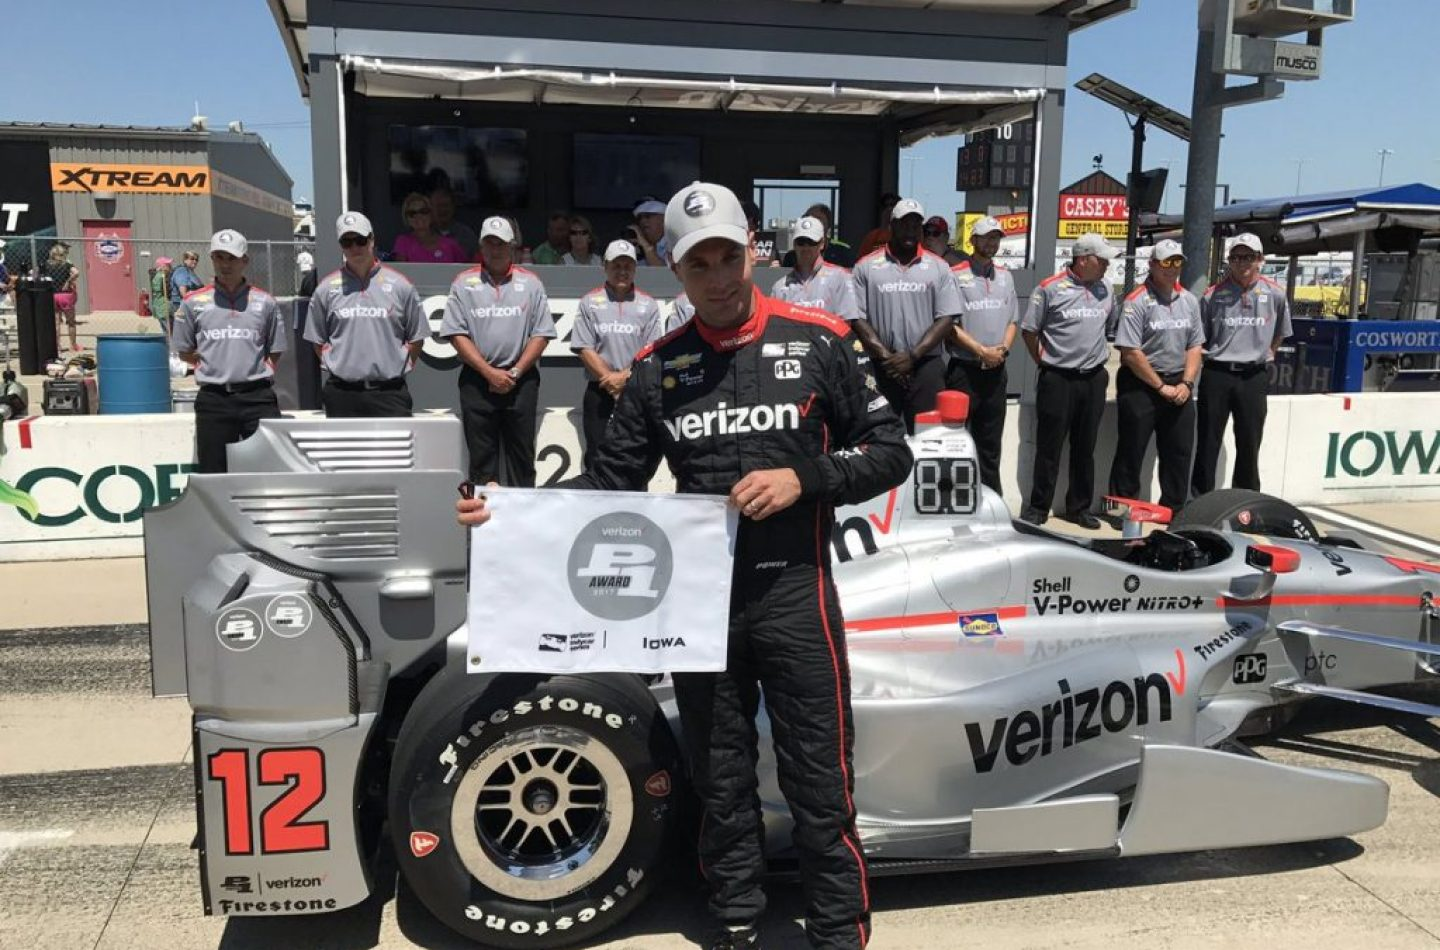 Indycar | Pole strepitosa per Will Power in Iowa